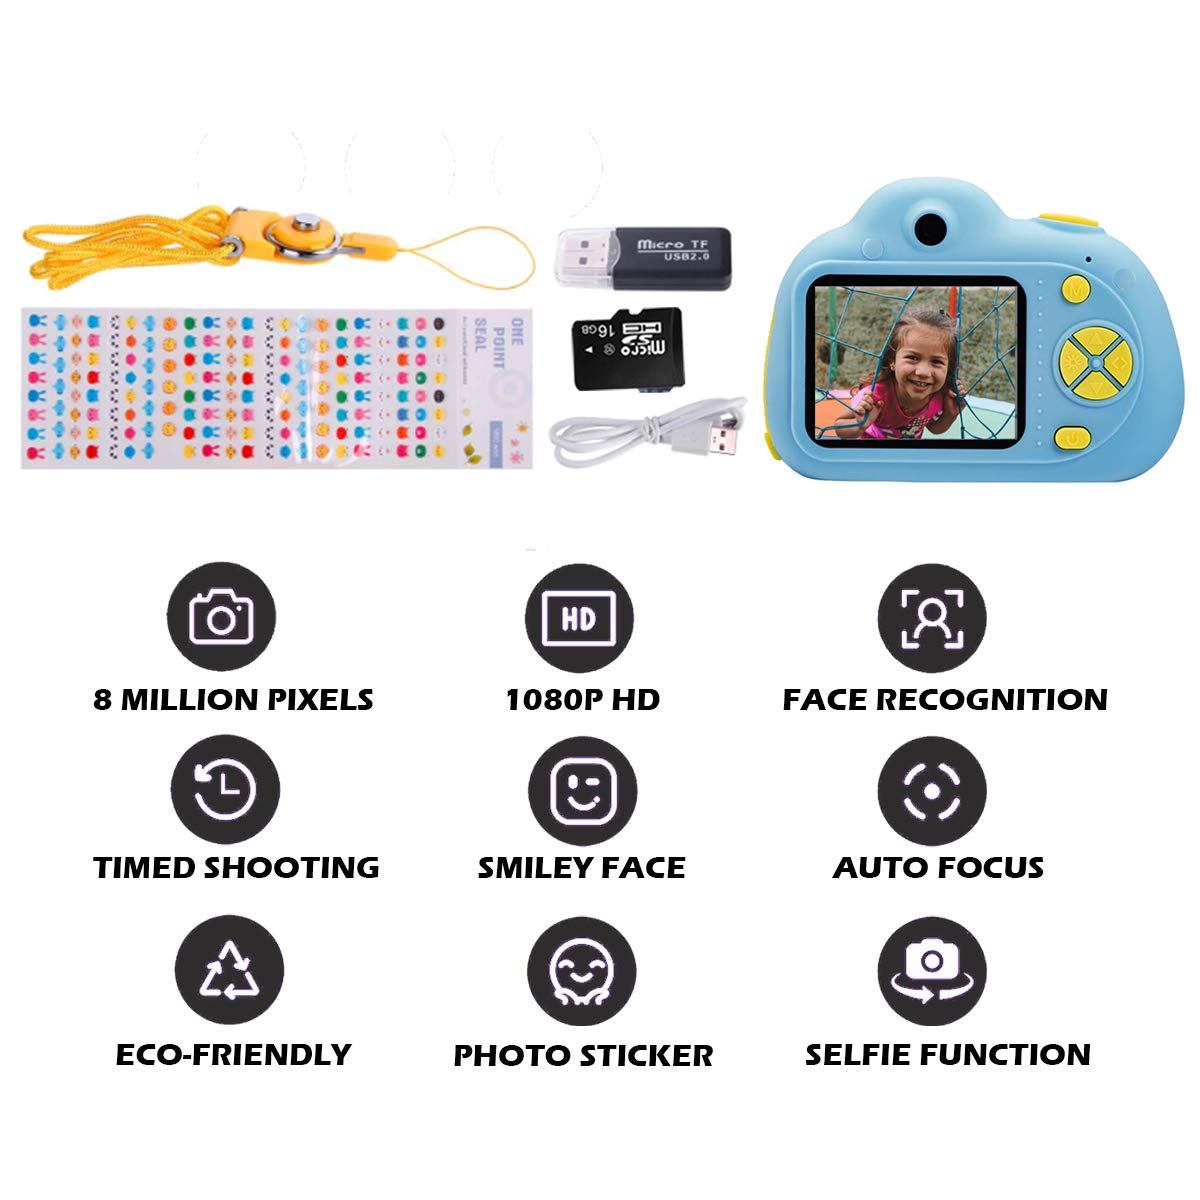 KIDOVE Kids Toys Fun Camera, Waterproof & Shockproof Child Selfie digital game Camcorder, 8MP 1080P dual camera Video Recorder, Creative Birthday Gifts for girls and boys, 16GB TF Card Included (Blue) by KIDOVE (Image #7)